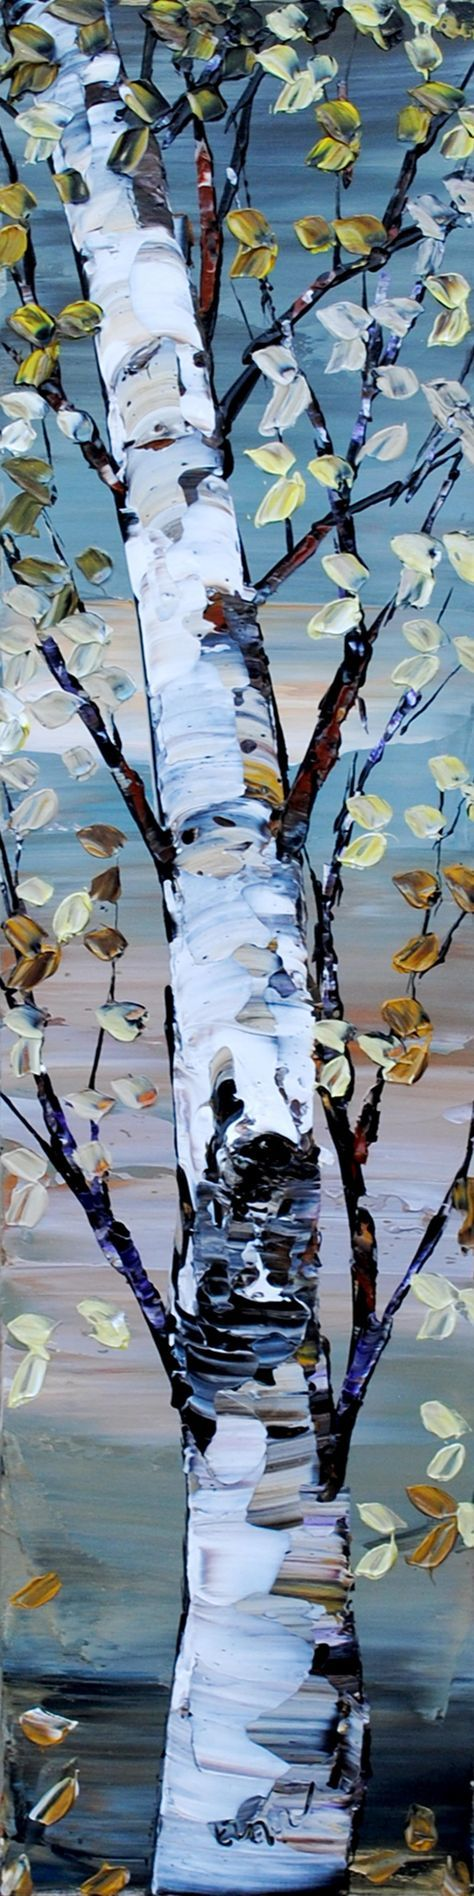 Looking Up Shades of Grey - original painting by Maya Eventov at Crescent Hill Gallery